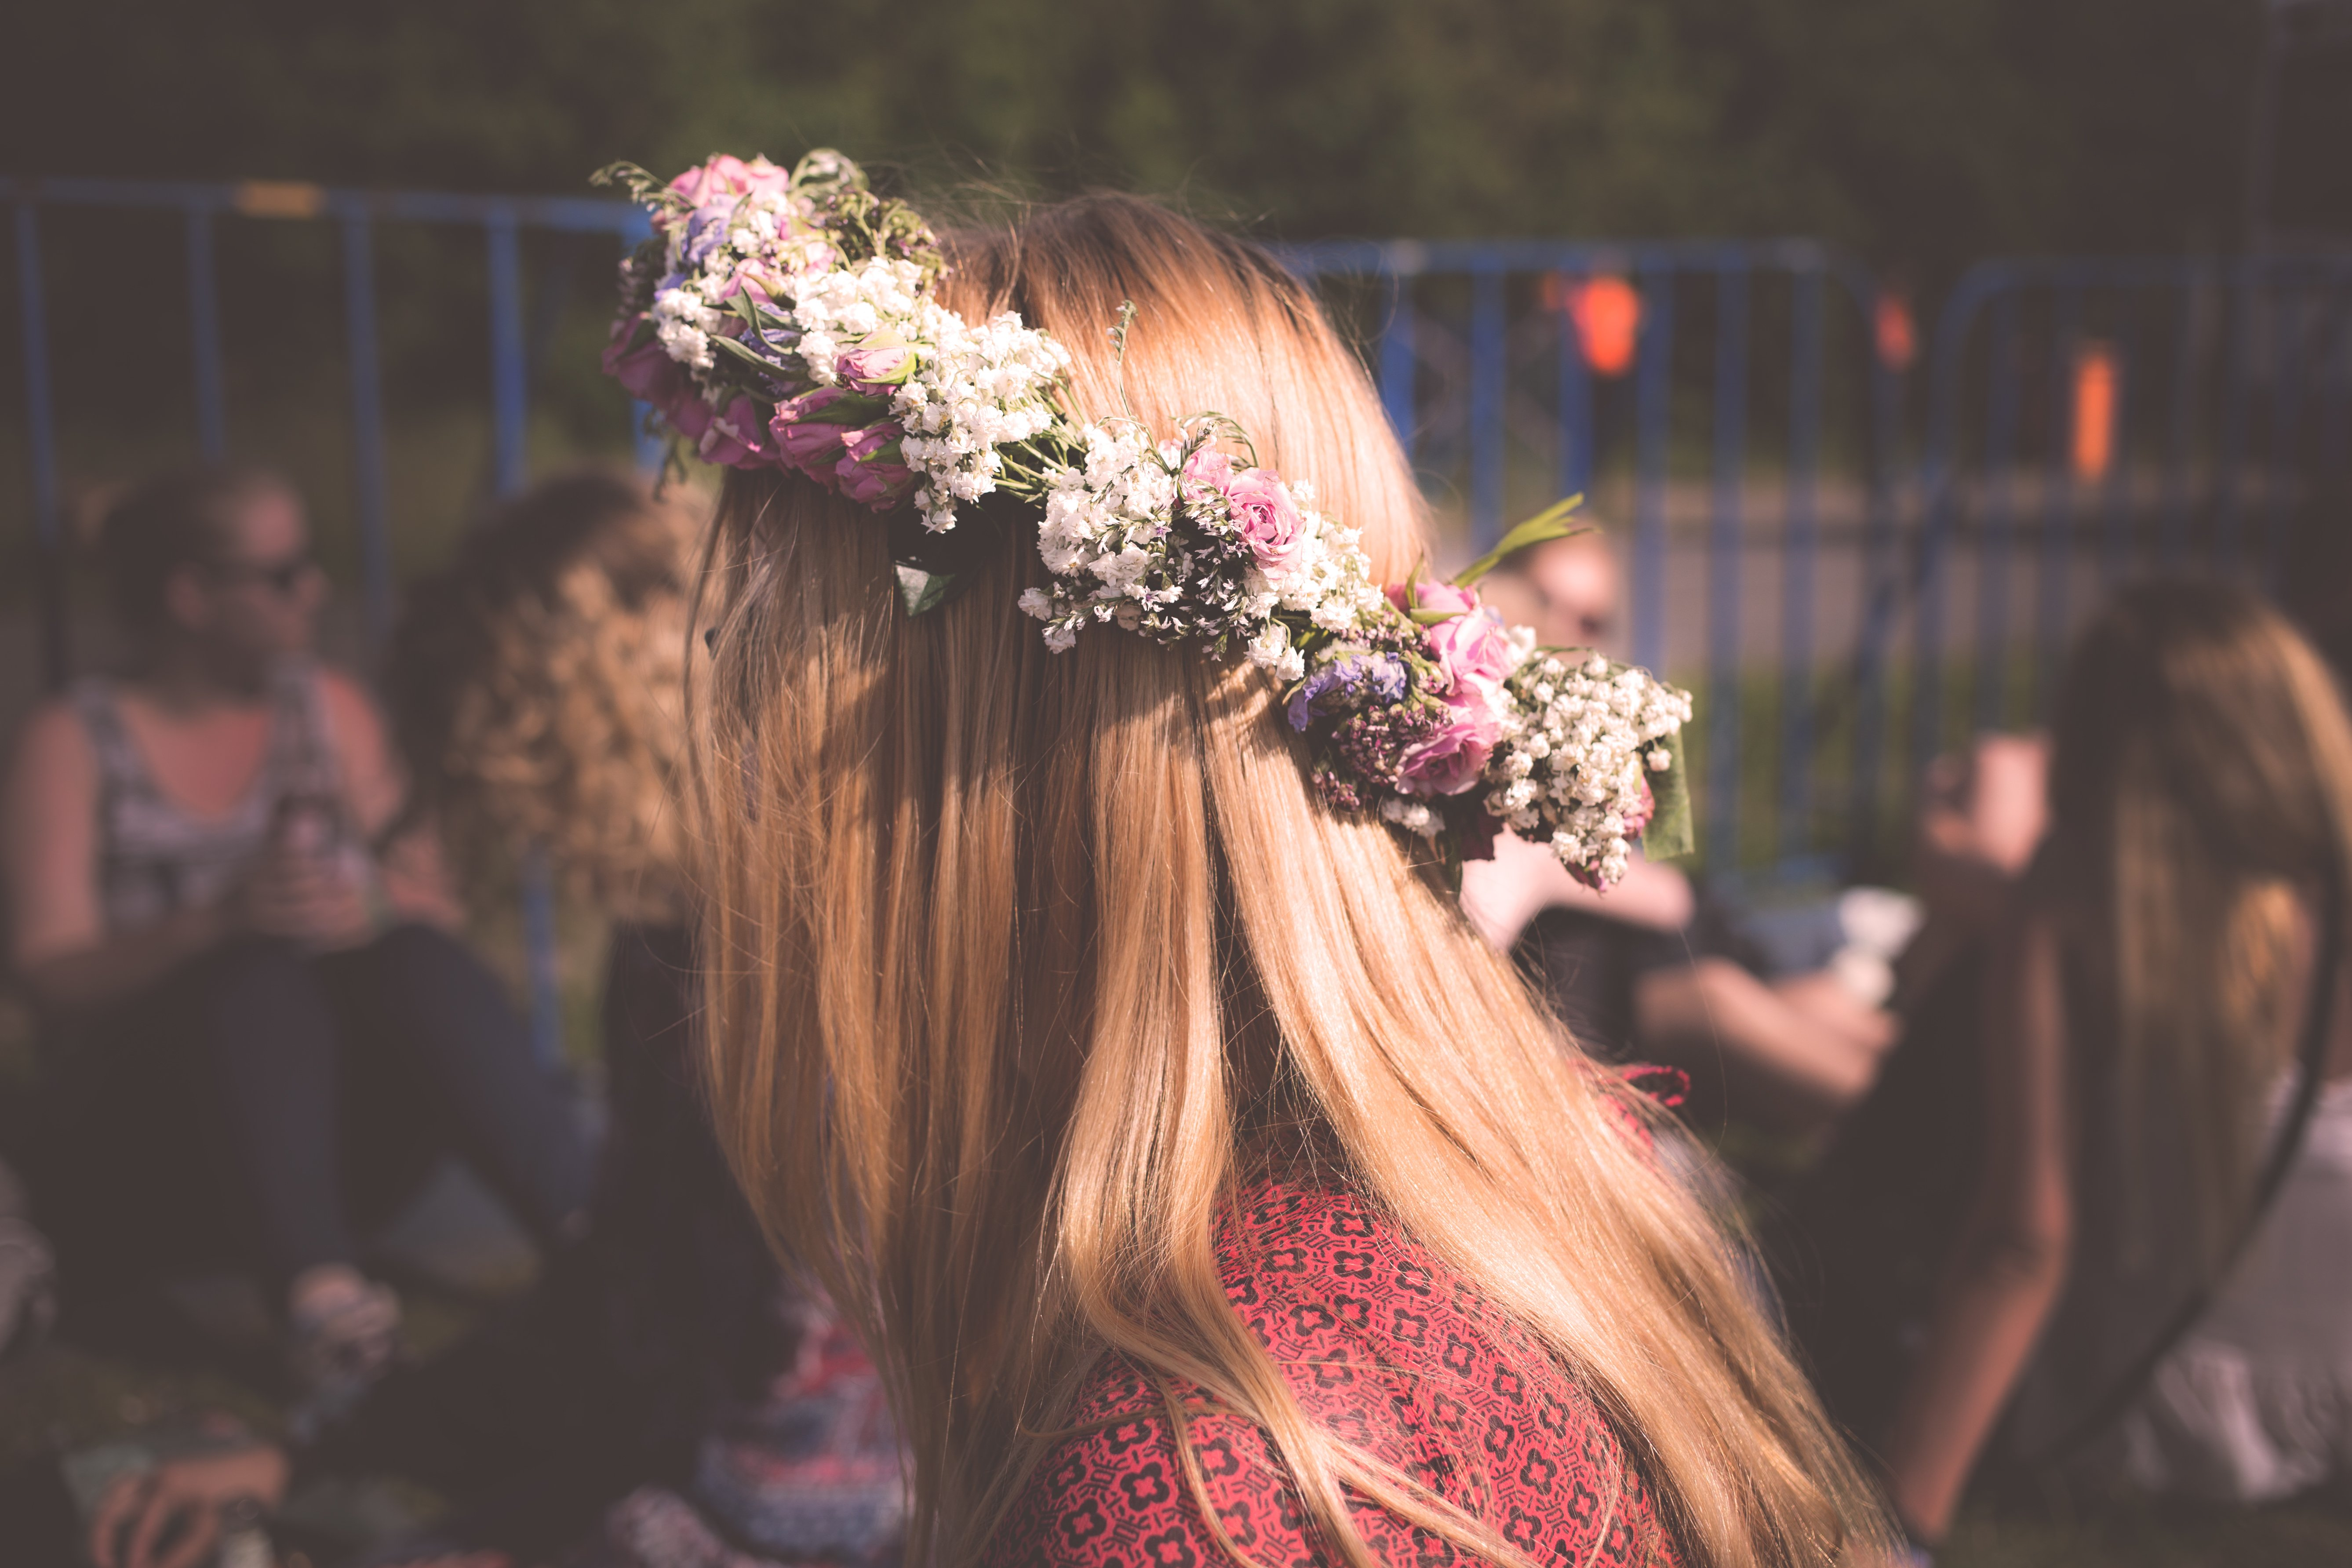 Making a New Year's Floral Crown